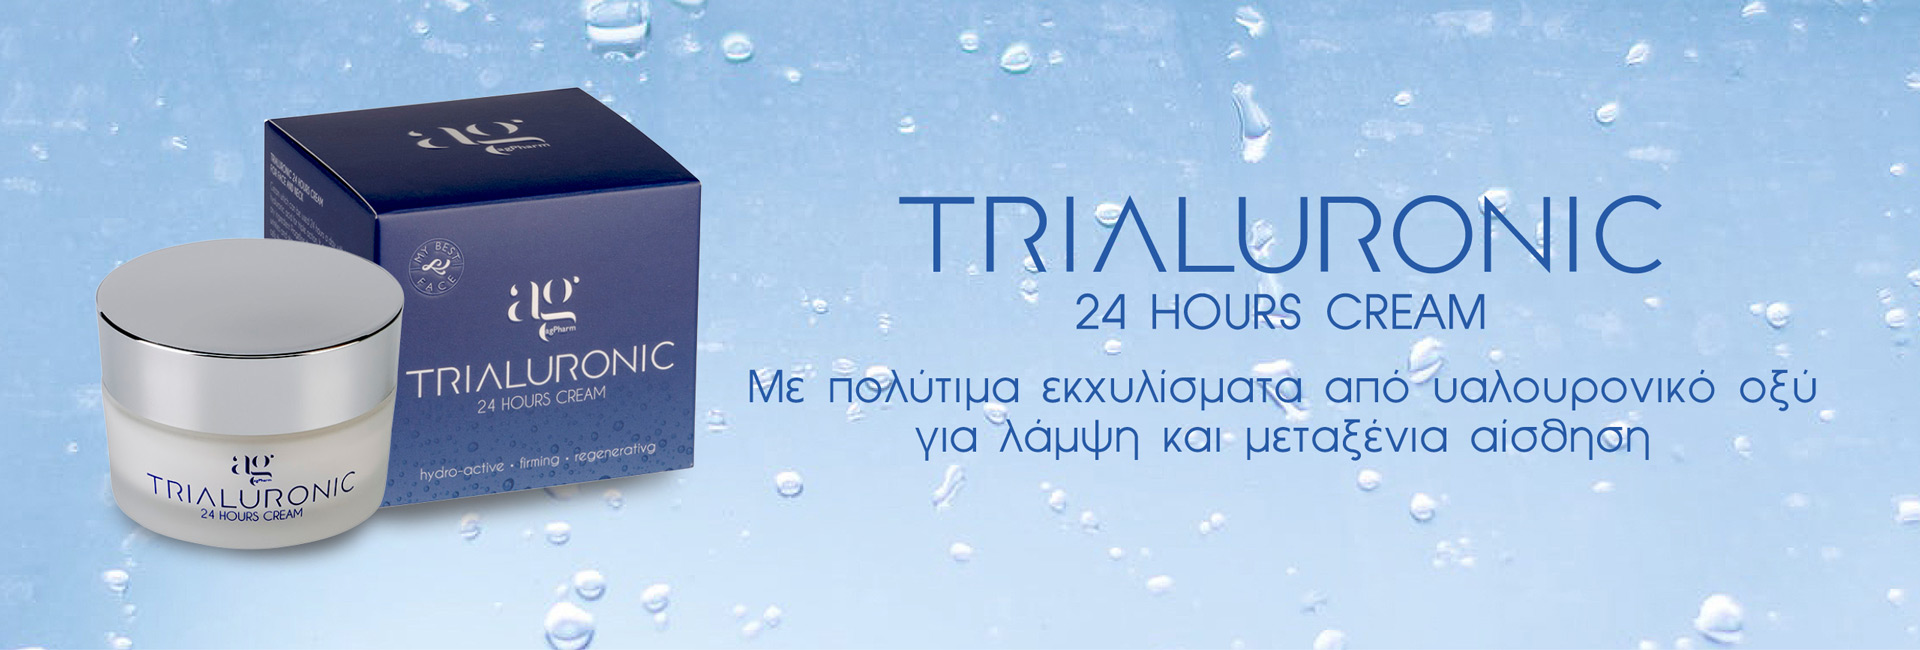 24 hours Trialuronic cream